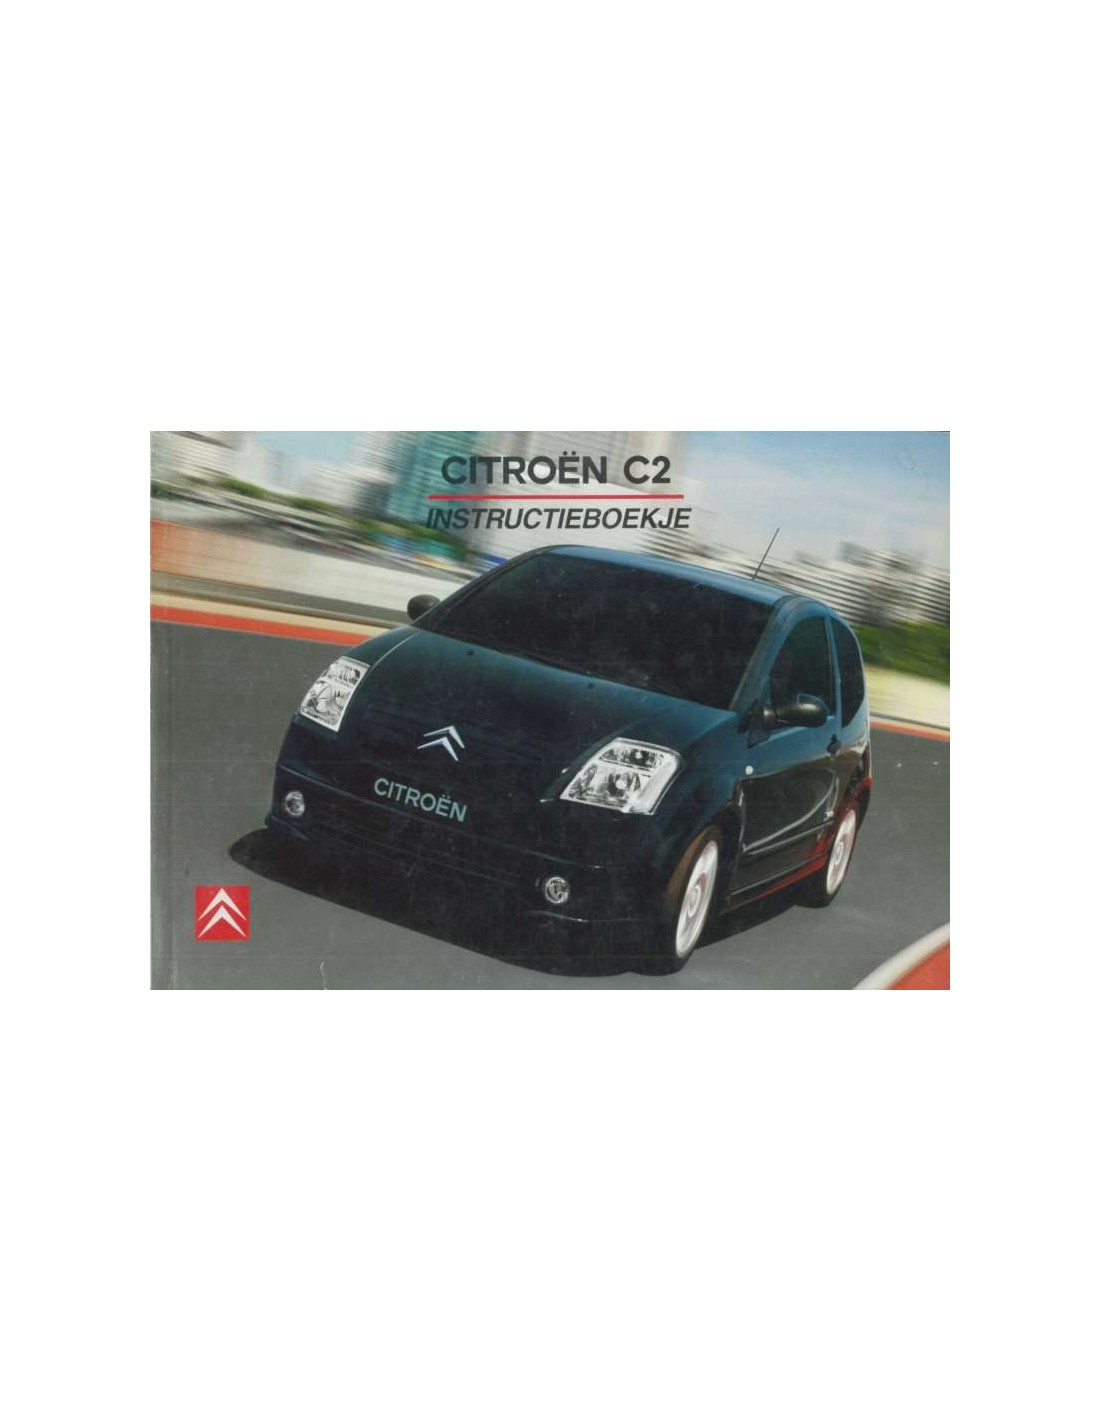 2004 citroen c2 owners manual dutch rh autolit eu owner's manual citroen c4 citroen c6 owners manual